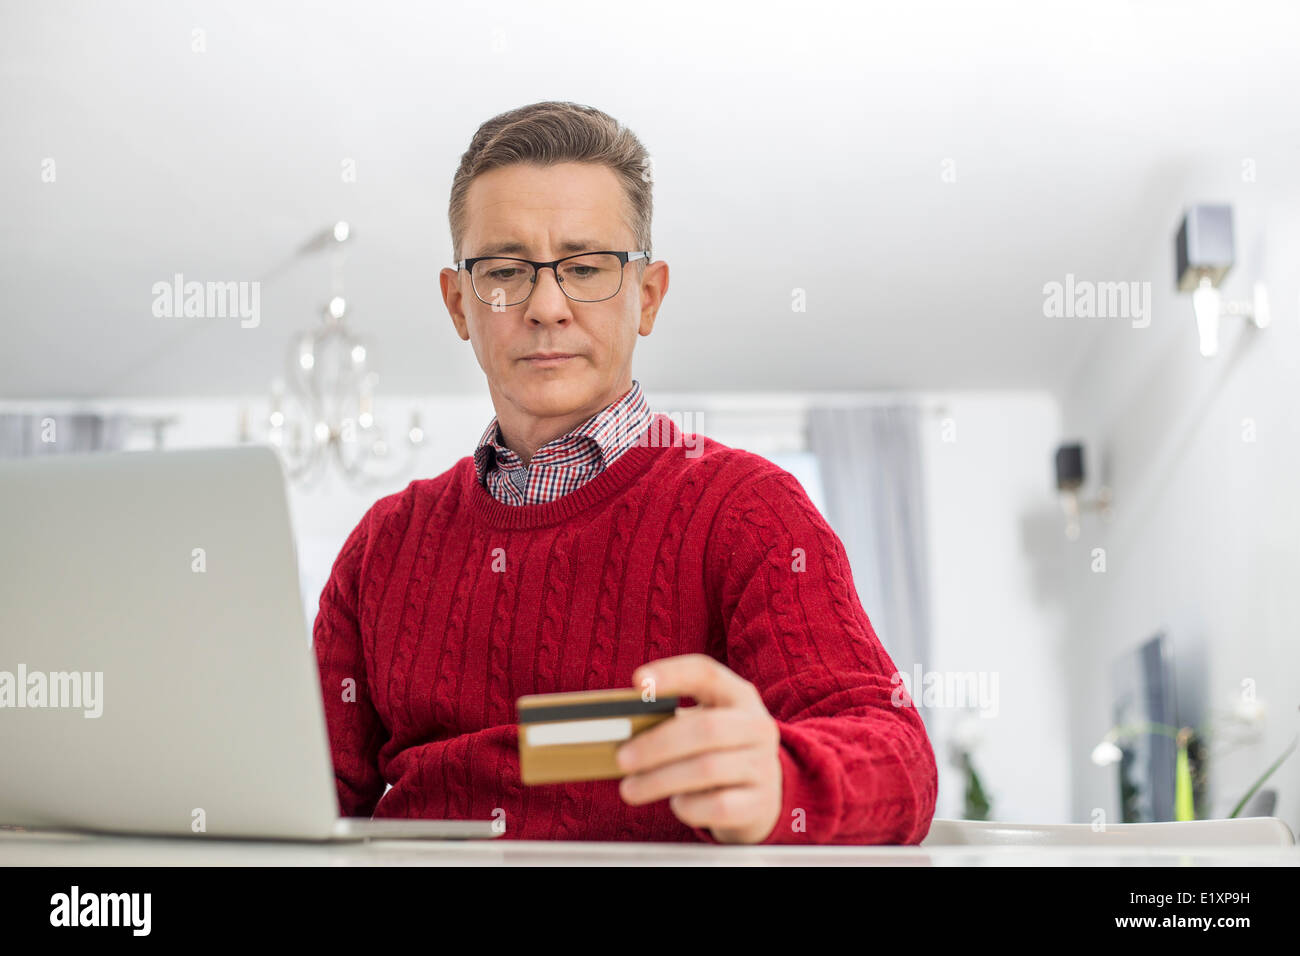 Mature man using credit card and laptop to shop online at home - Stock Image